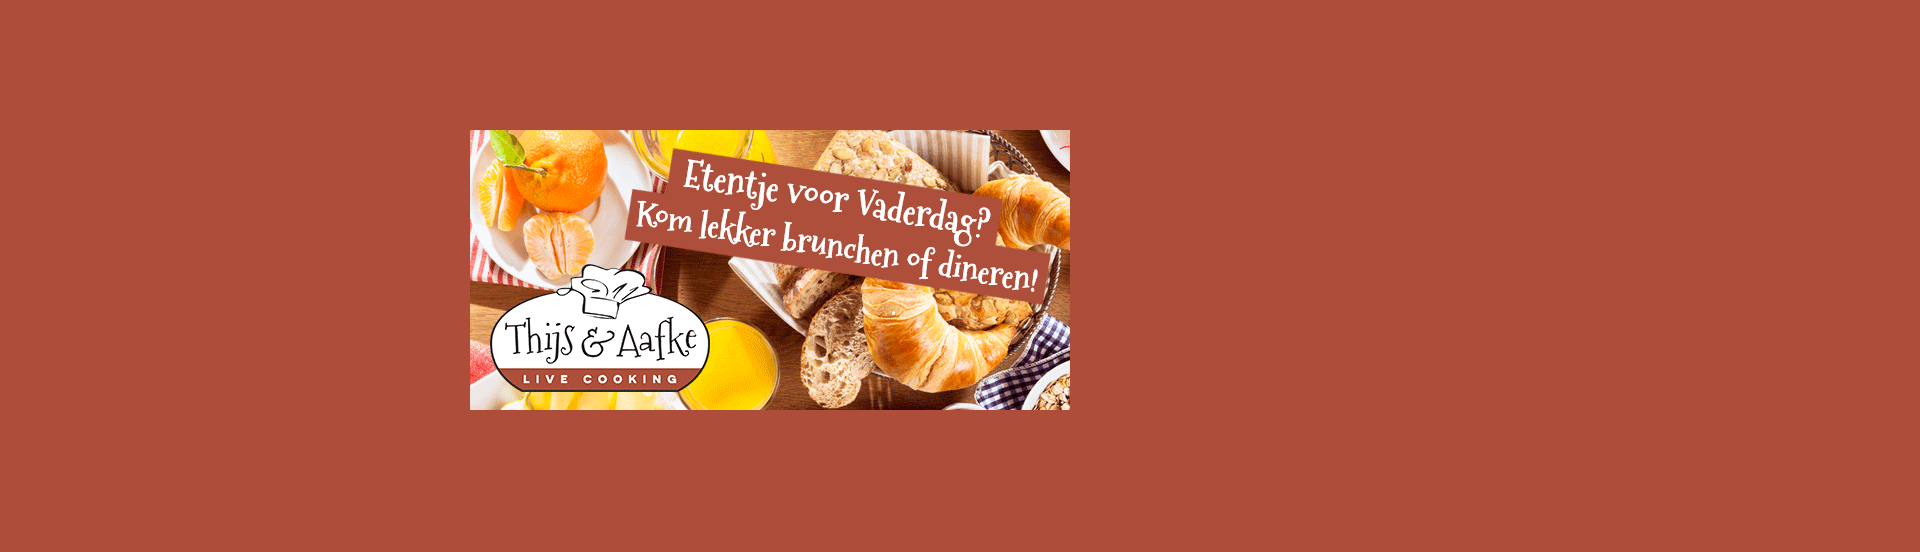 vaderdag website